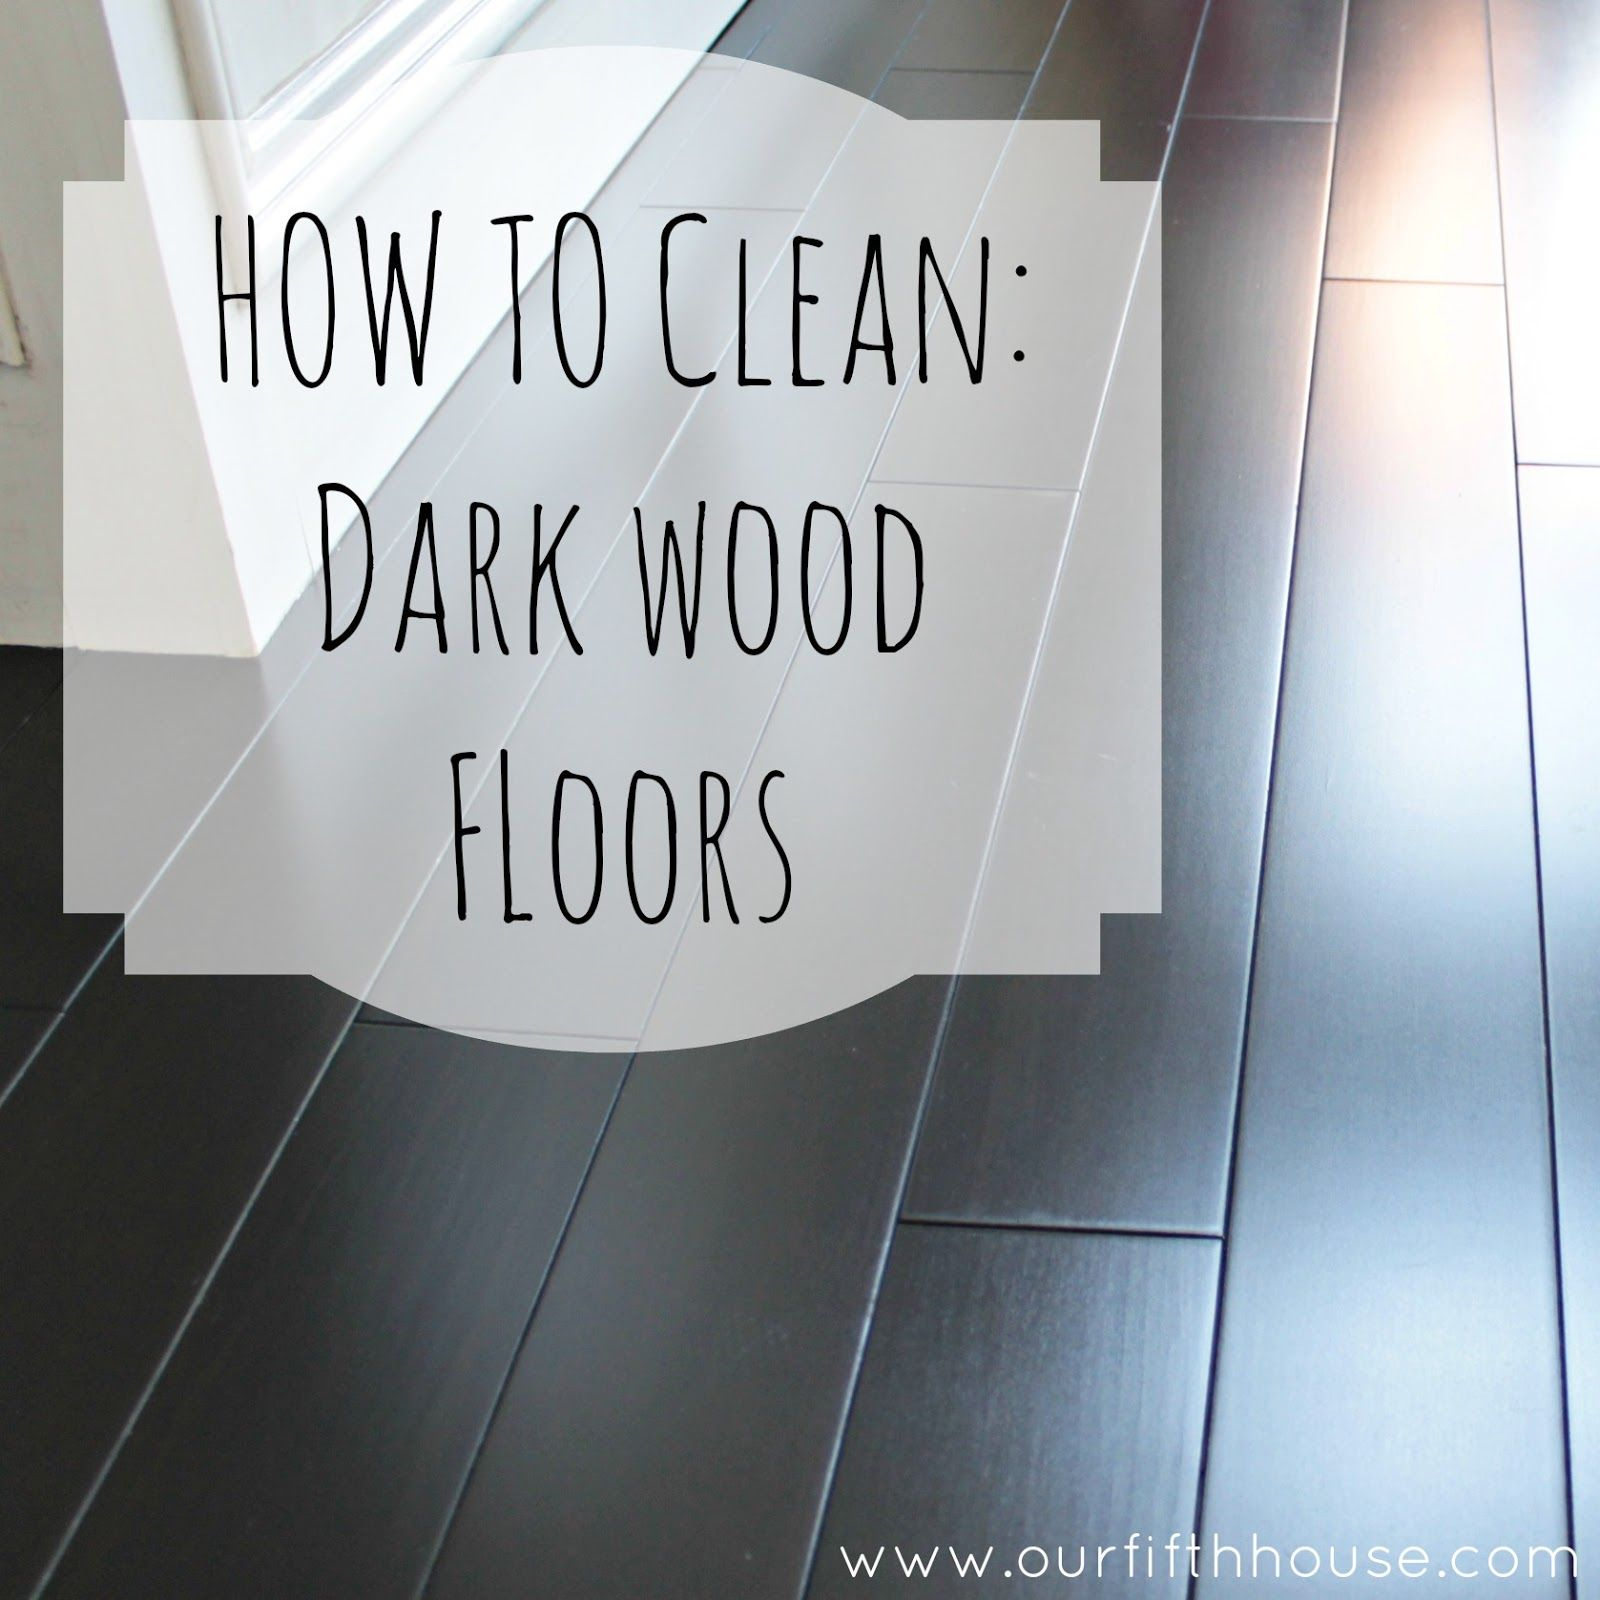 How to clean dark wood floors dark wood dark and woods how to clean dark wood floors our fifth house dark wood floorsmop hardwood dailygadgetfo Choice Image